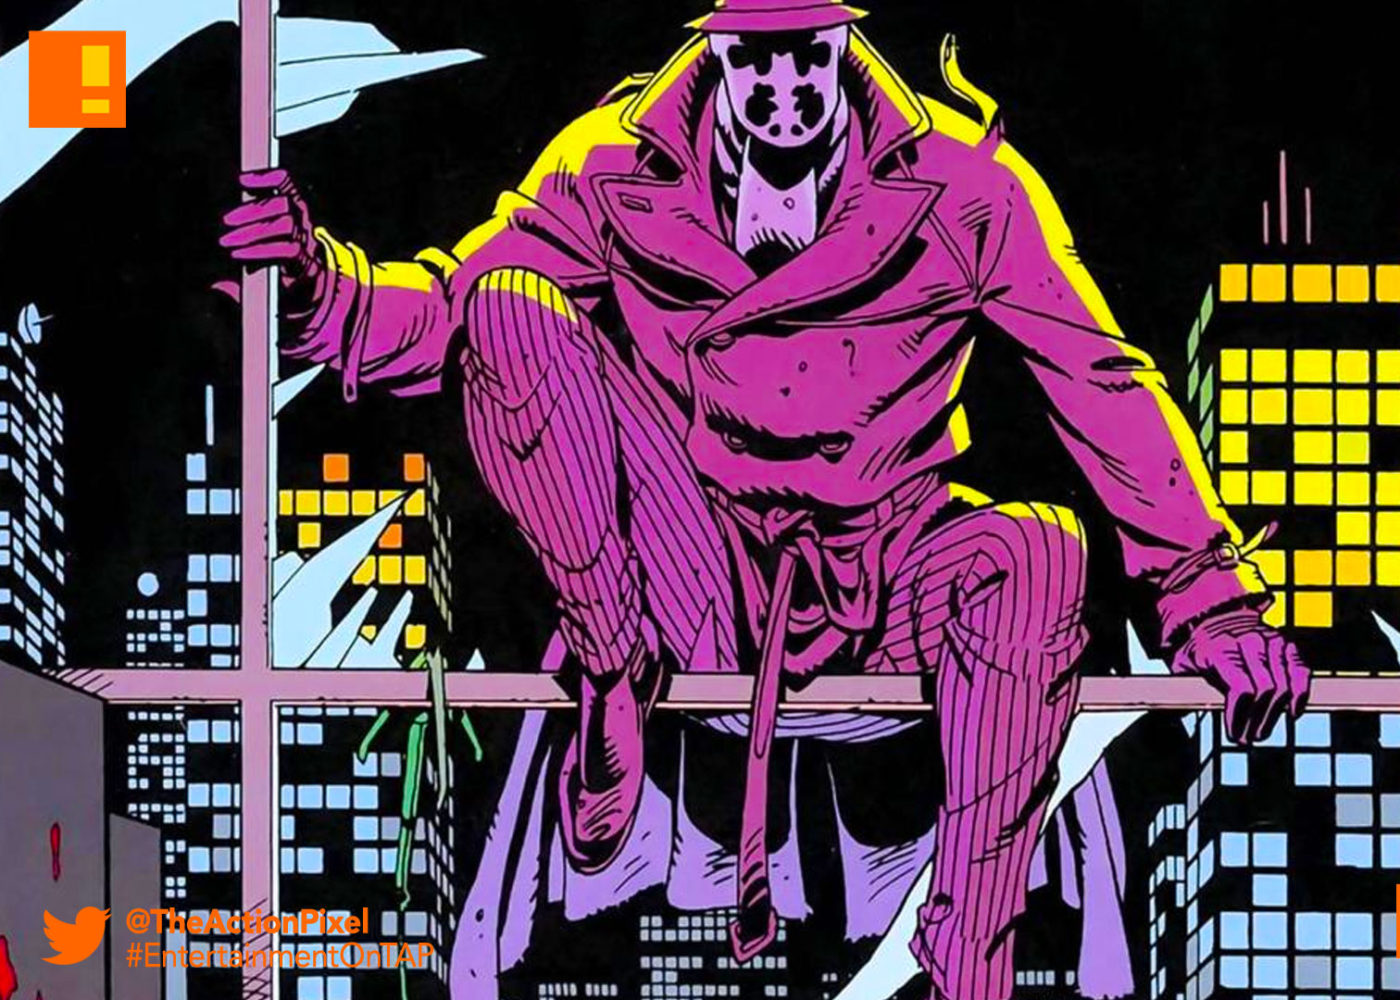 Watchmen, dave gibbon, alan moore, dc comics, the action pixel,@theactionpixel, graphic novel, hbo, tv series, pilot,damon lindelof